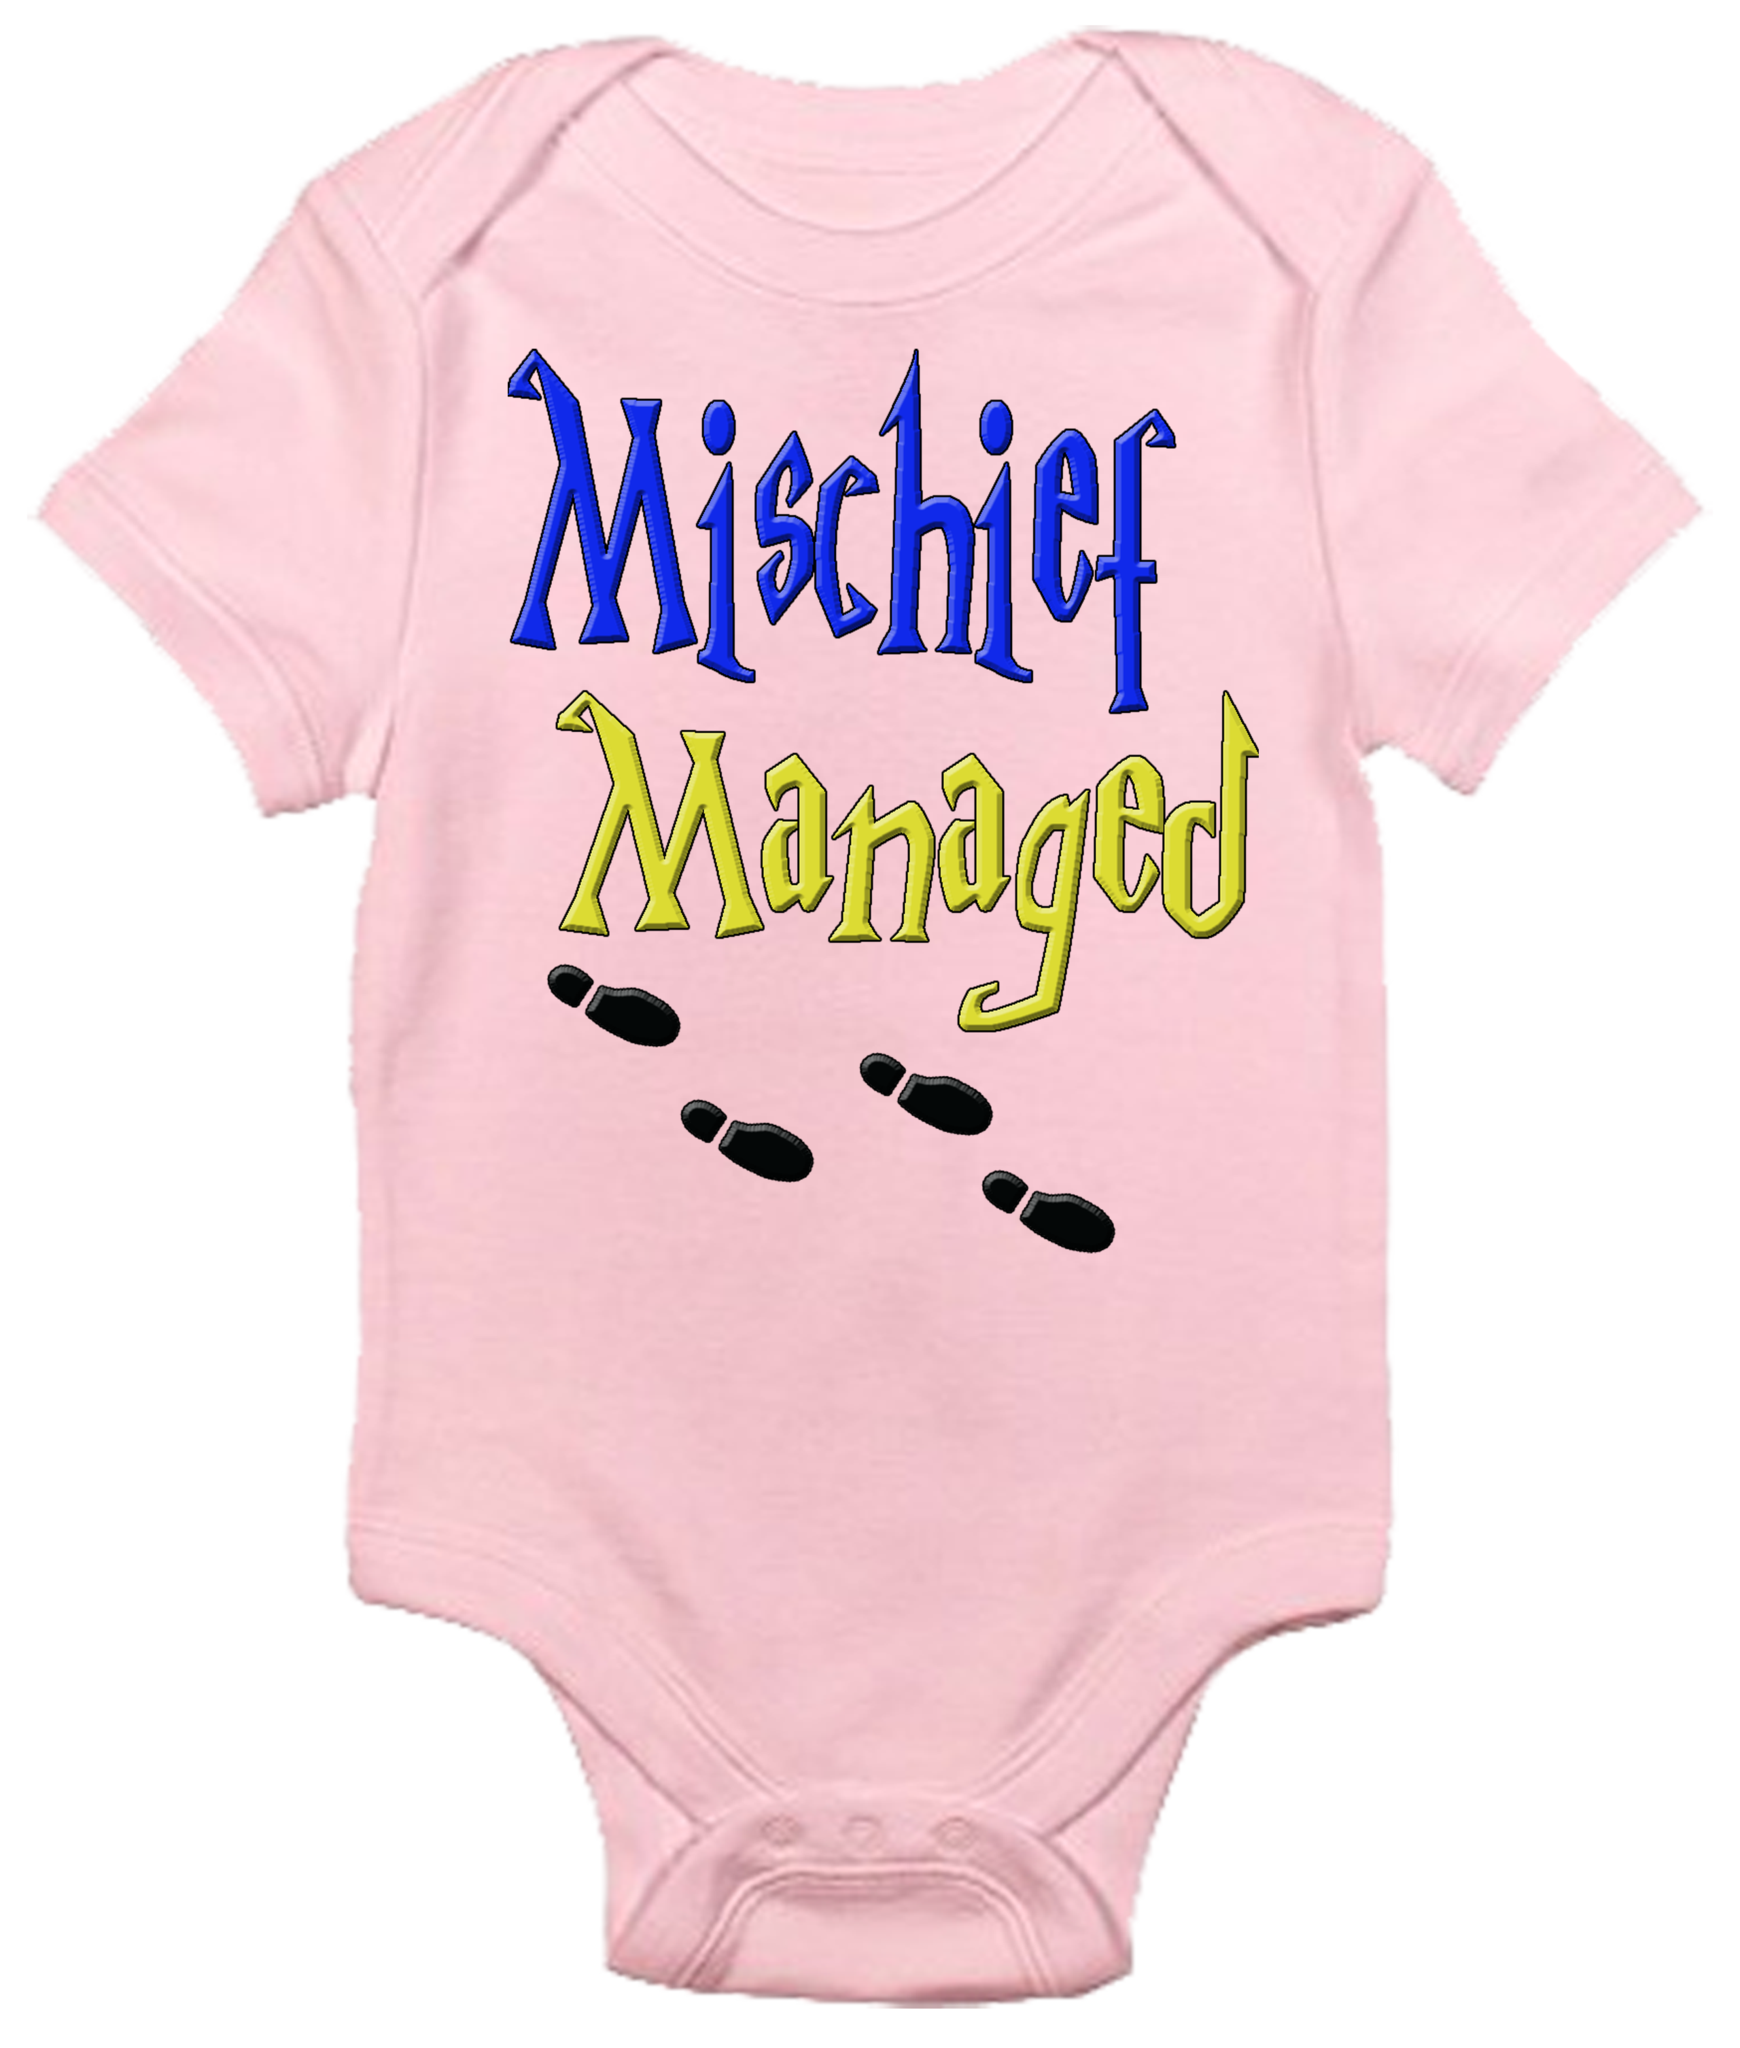 bb98326a9 The Harry Potter Baby Bodysuit That Wins The Hearts of All. Out with the  boring bodysuit! Rapunzie body suits feature witty and charming sayings and  ...